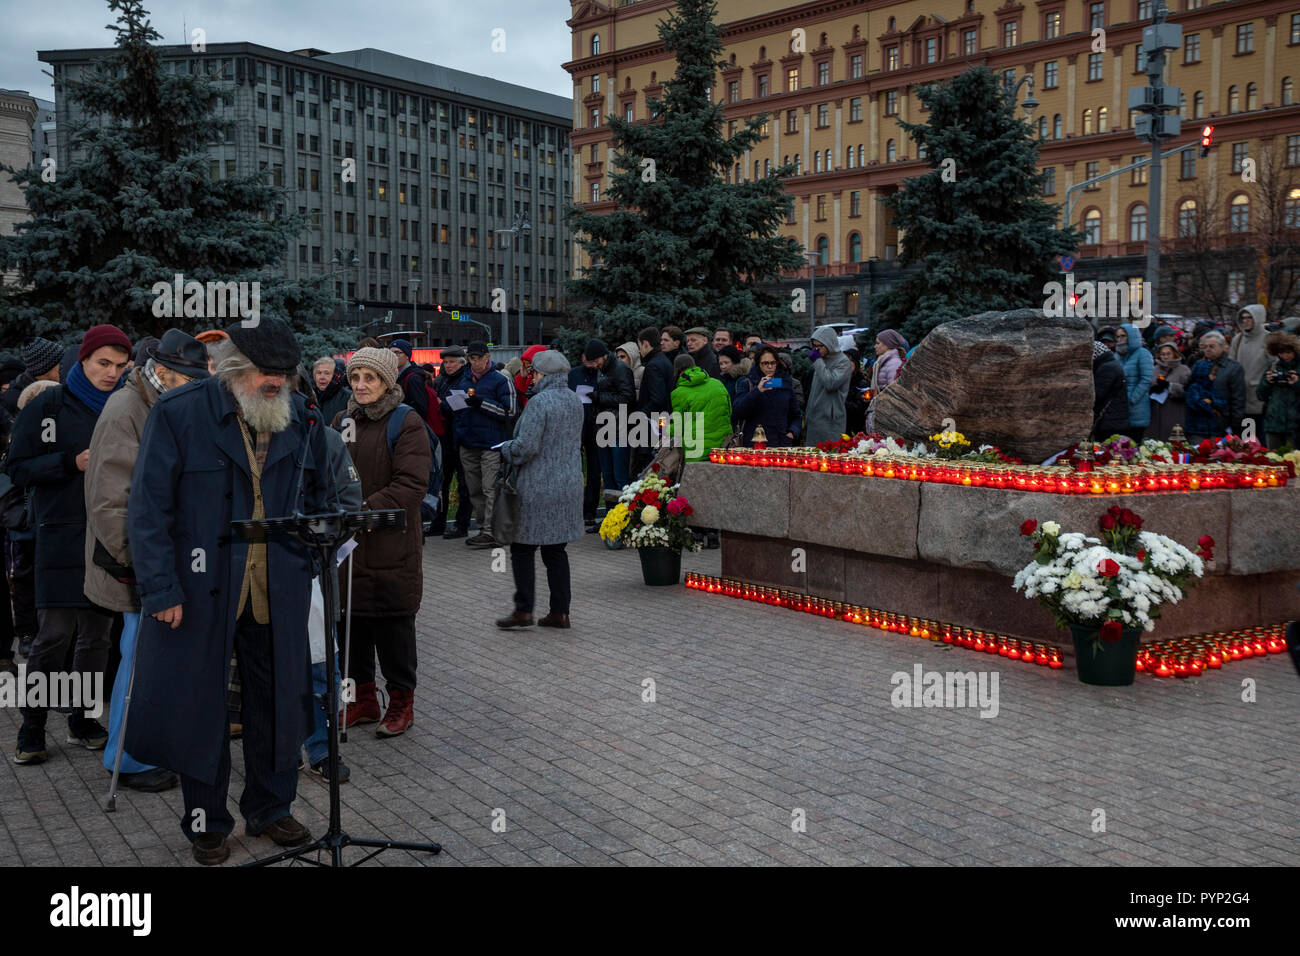 Moscow, Russia. 29th October, 2018 People lay flowers and light candles as they take part in an event commemorating the victims of political repression by the Solovetsky Stone monument in Lubyanka Square on the eve of Day of Remembrance of the Victims of Political Repression Credit: Nikolay Vinokurov/Alamy Live News - Stock Image